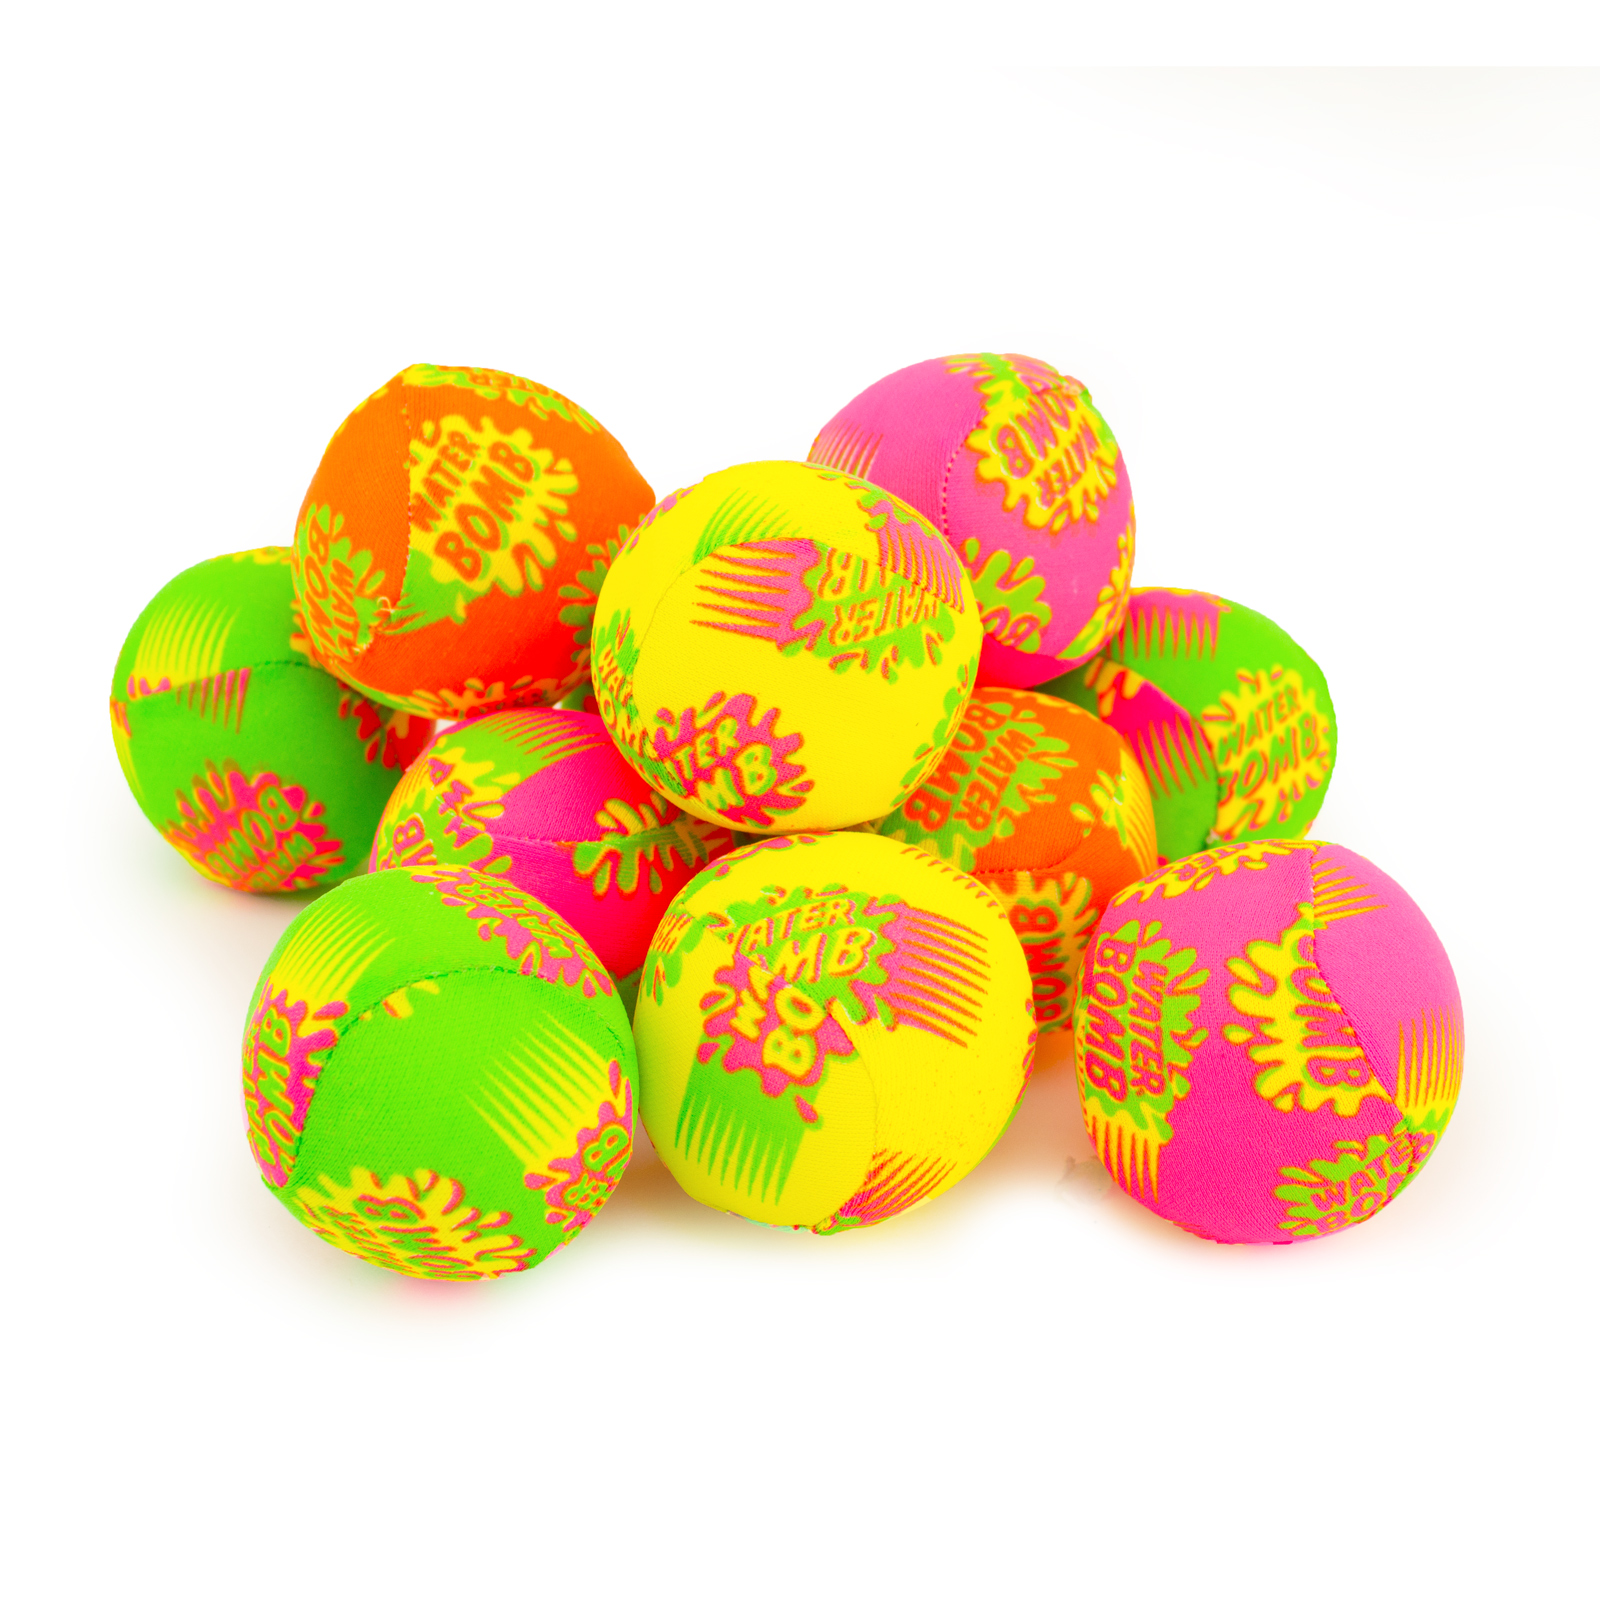 12 Multi Color Water Splash Balls Grenades Bombs Summer